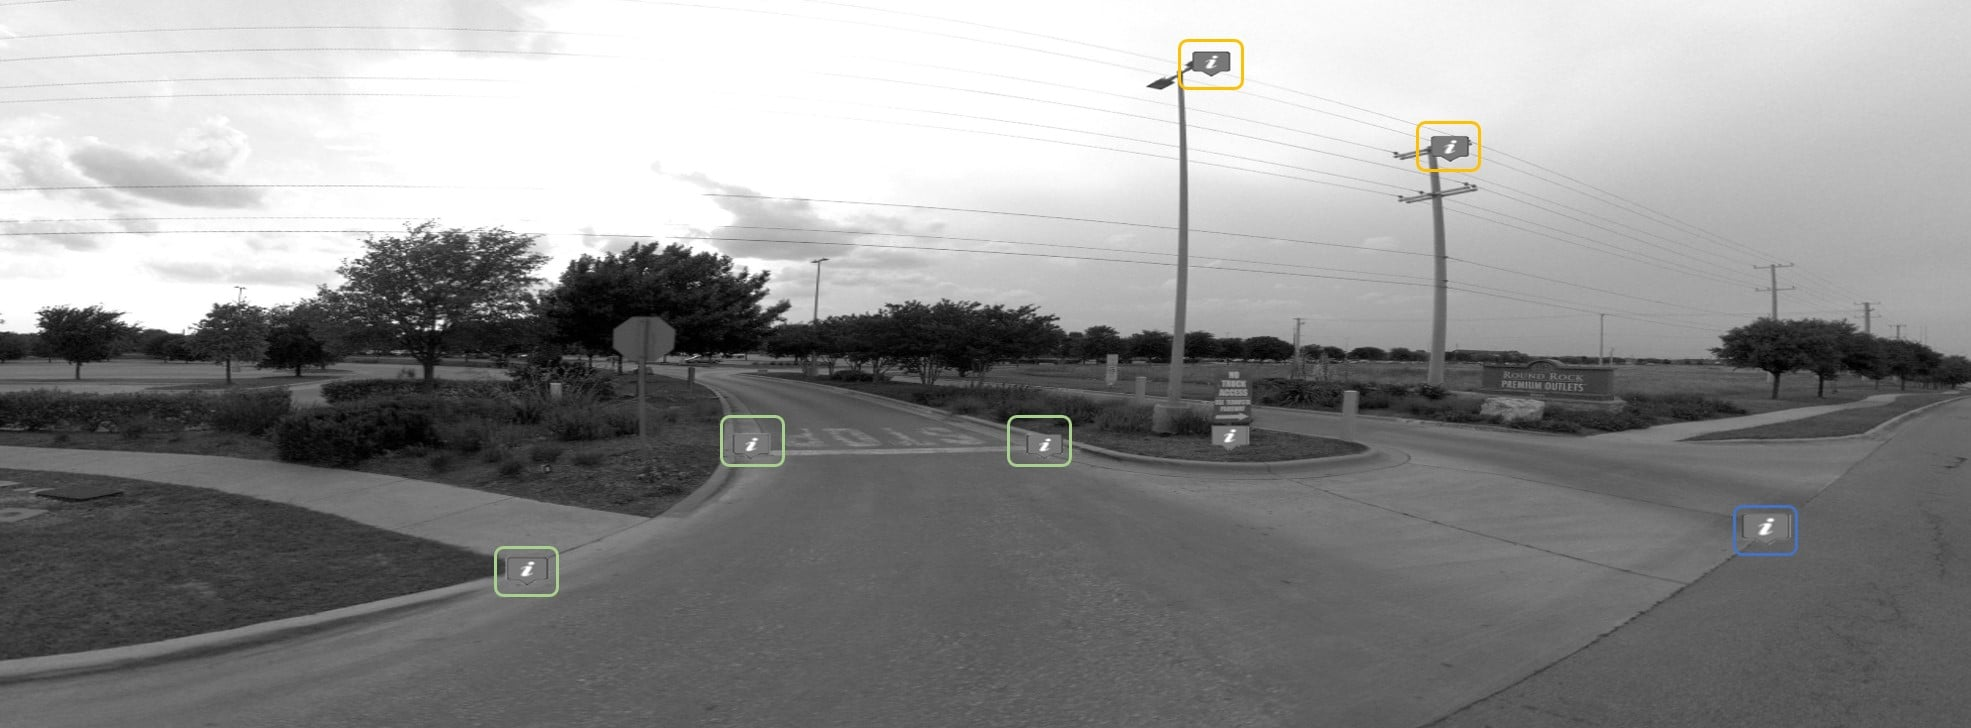 geotag video and images using OcuMap